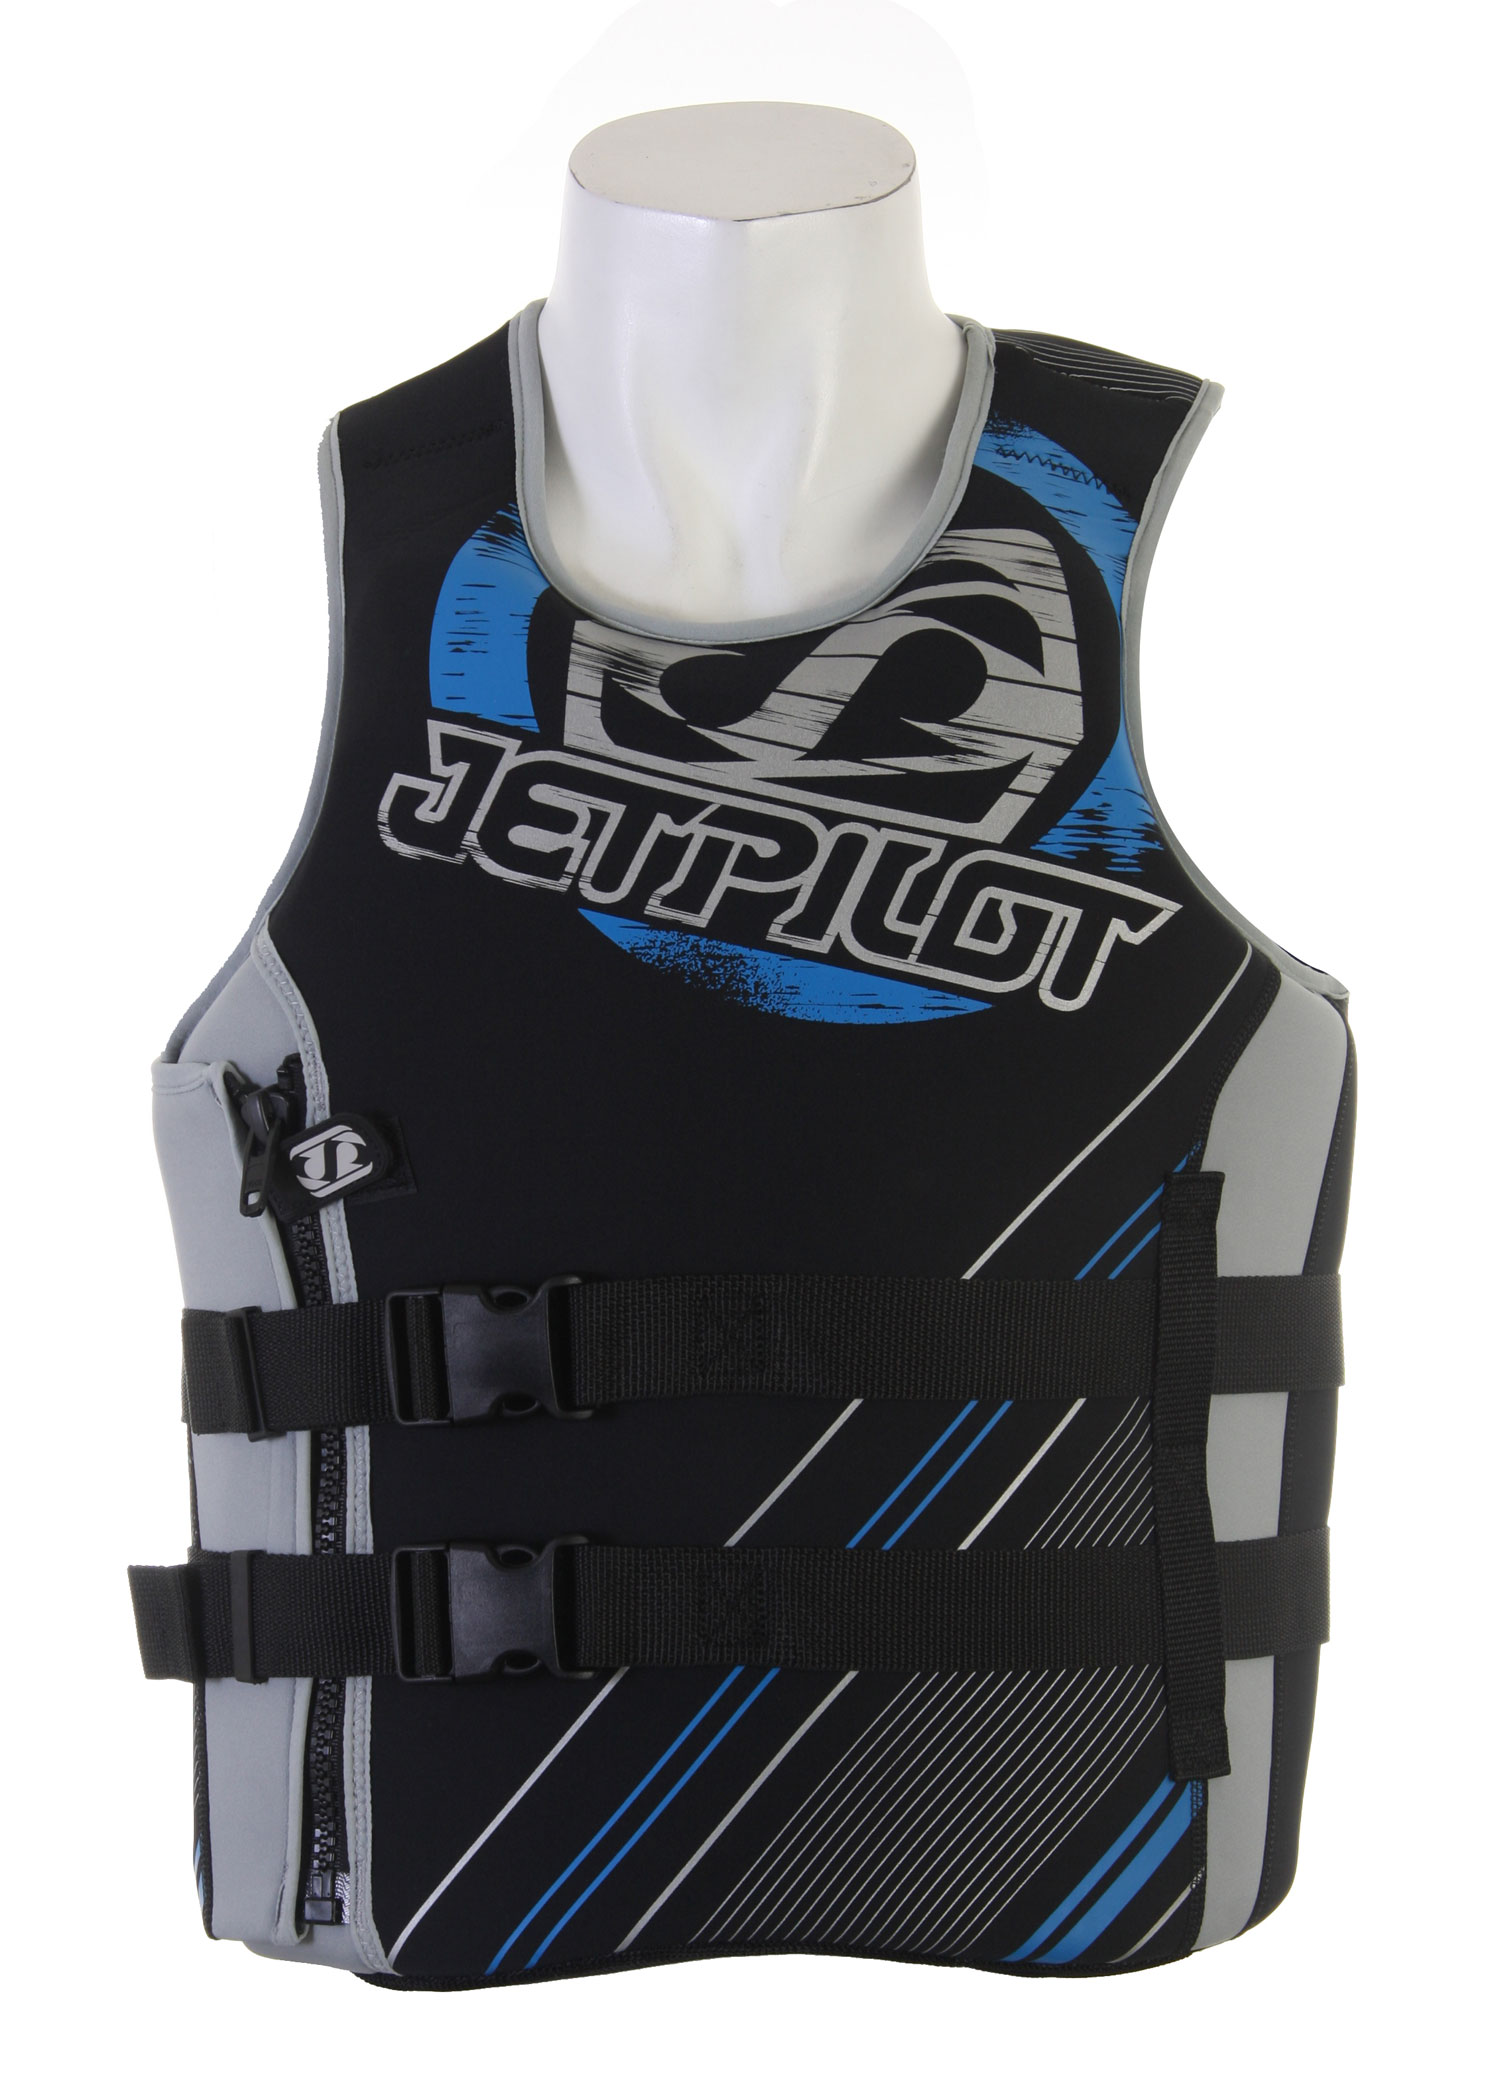 Wake A stylish wakeboard vest is a must for any rider. You don't wanna drown after just missing a trick and slamming your head, but you don't wanna look like a puffed up marshmellow with no freedon of movement. The Jet Pilot Core wakeboard vest solves that dilemma. The premium neoprene and rubber pads make for a perfect fit, but you'll still be able to throw down. The unique side entry system keep the vest wrapped tight around you. The Jet Pilot Core won't let you drown, but your impeccable style will remain unquestioned.Key Features of the Jet Pilot Core S/E USCG Neo Wakeboard Vest: Custom side entry closure - US Patent Approved 2-Buckle zip-closure design Premium neoprene for cushy fit Screen printed branding Custom rubber patches - $62.95